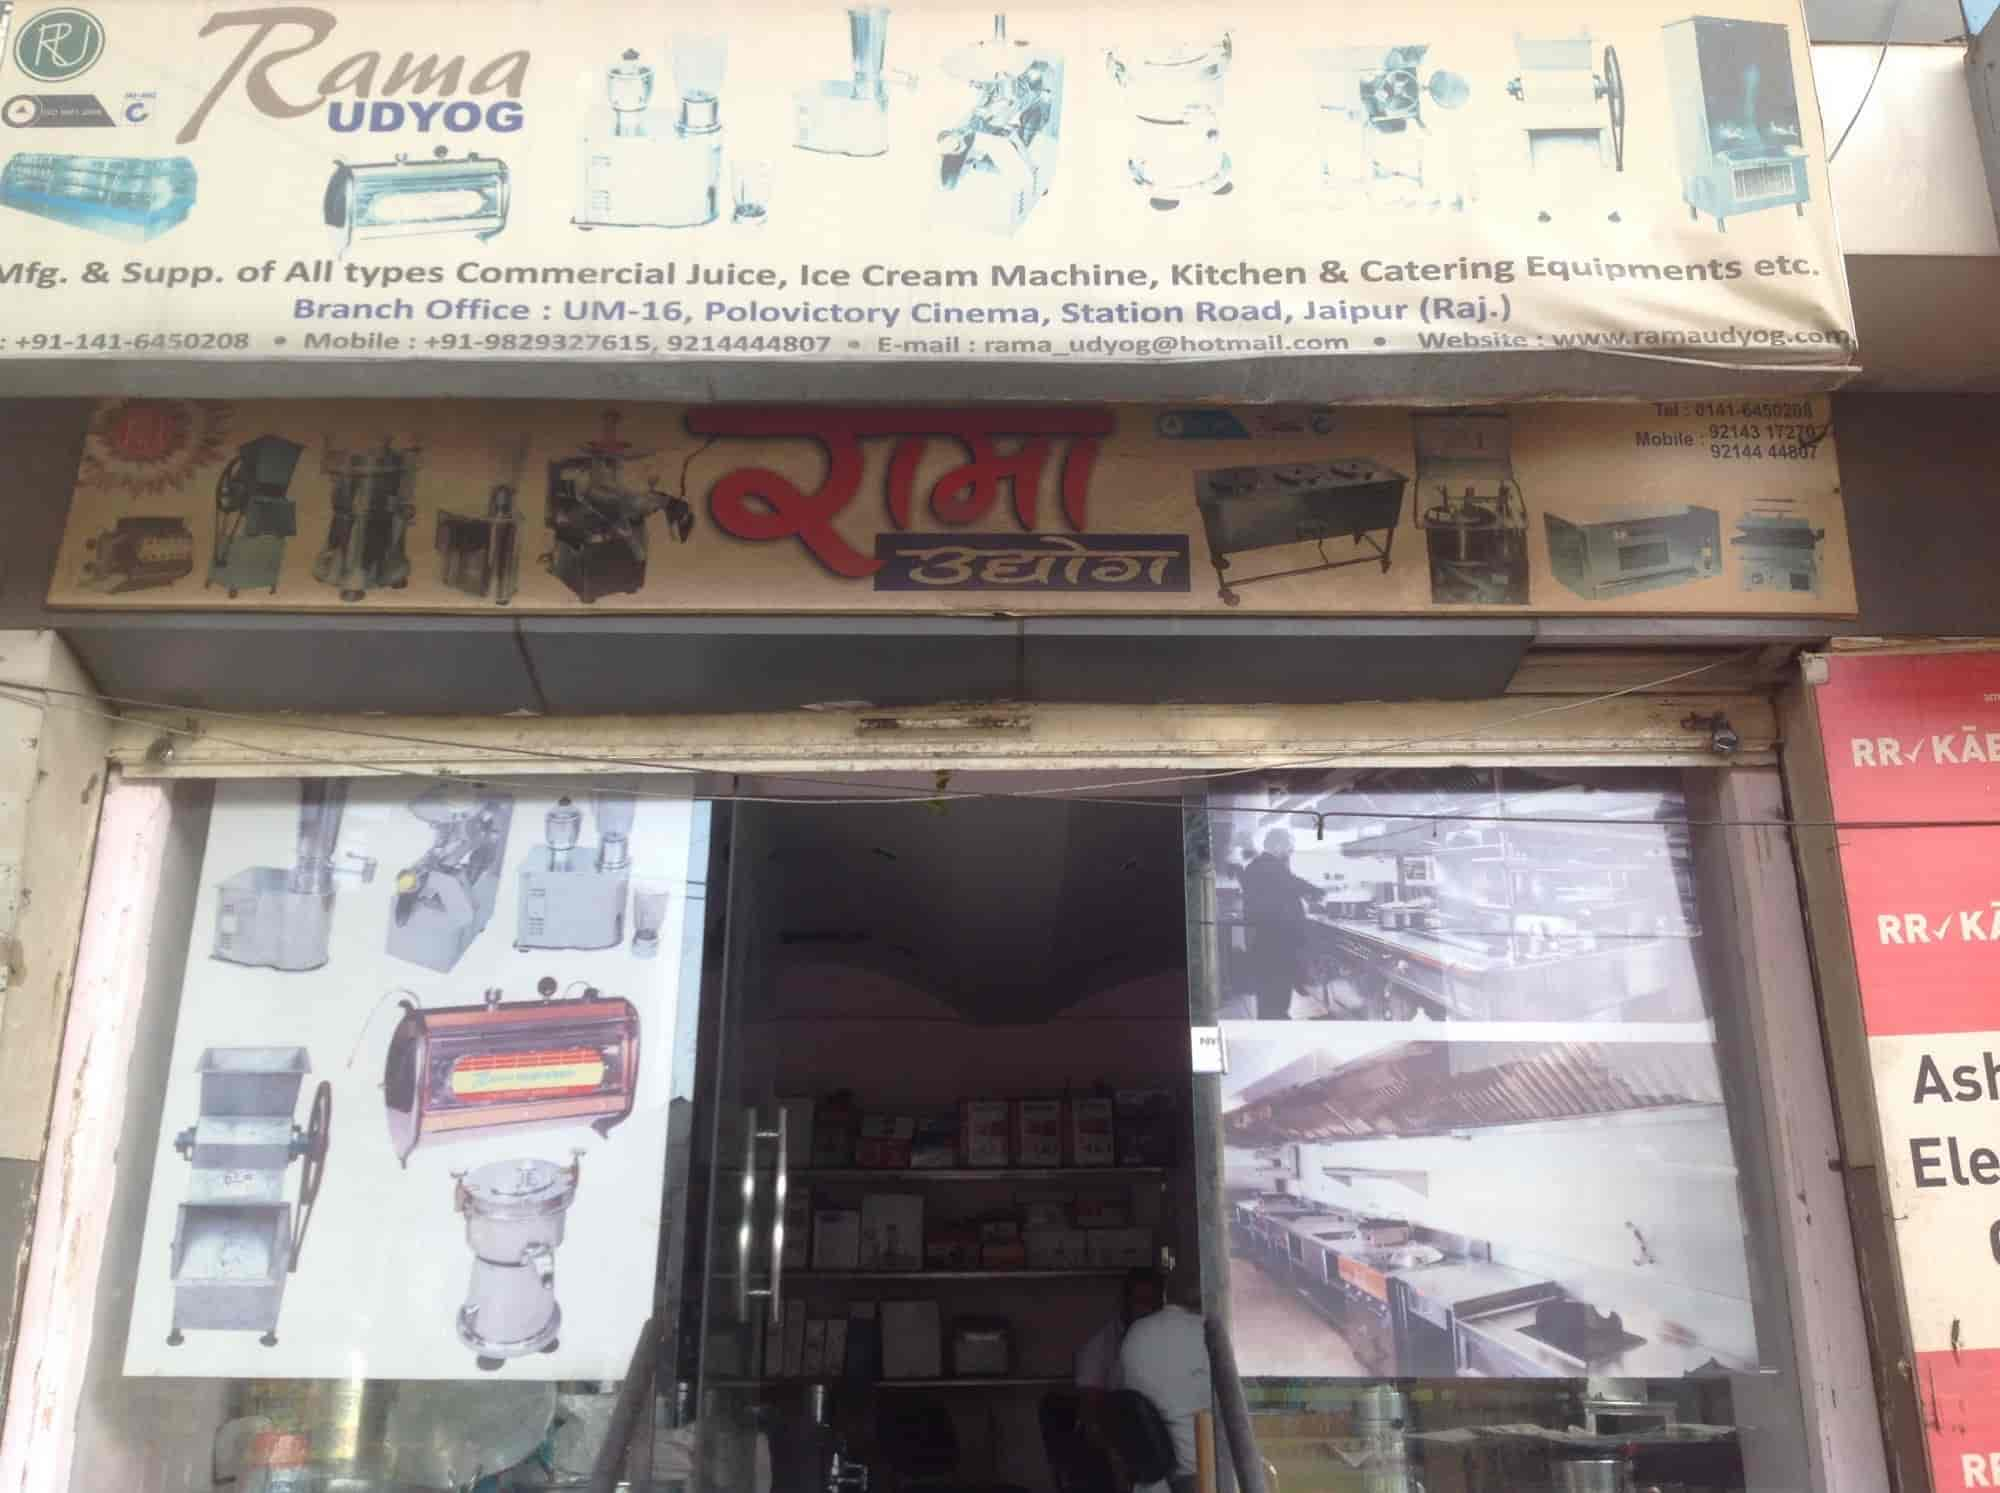 ... Front View Of Industrial Kitchen Equipment Shop   Rama Udyog Photos,  Station Road Jaipur, ...